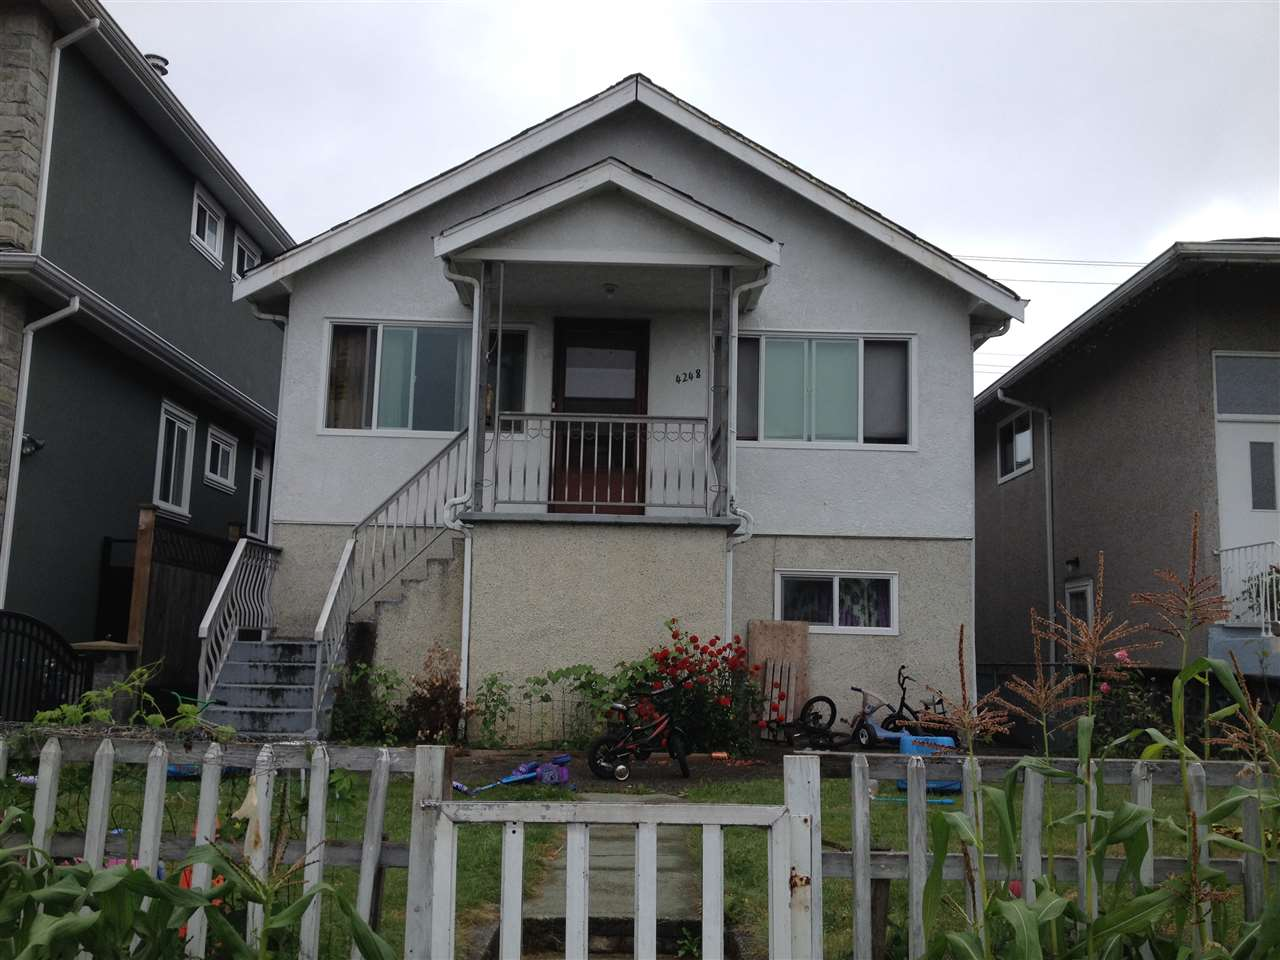 Main Photo: 4248 SLOCAN Street in Vancouver: Renfrew Heights House for sale (Vancouver East)  : MLS® # R2097515